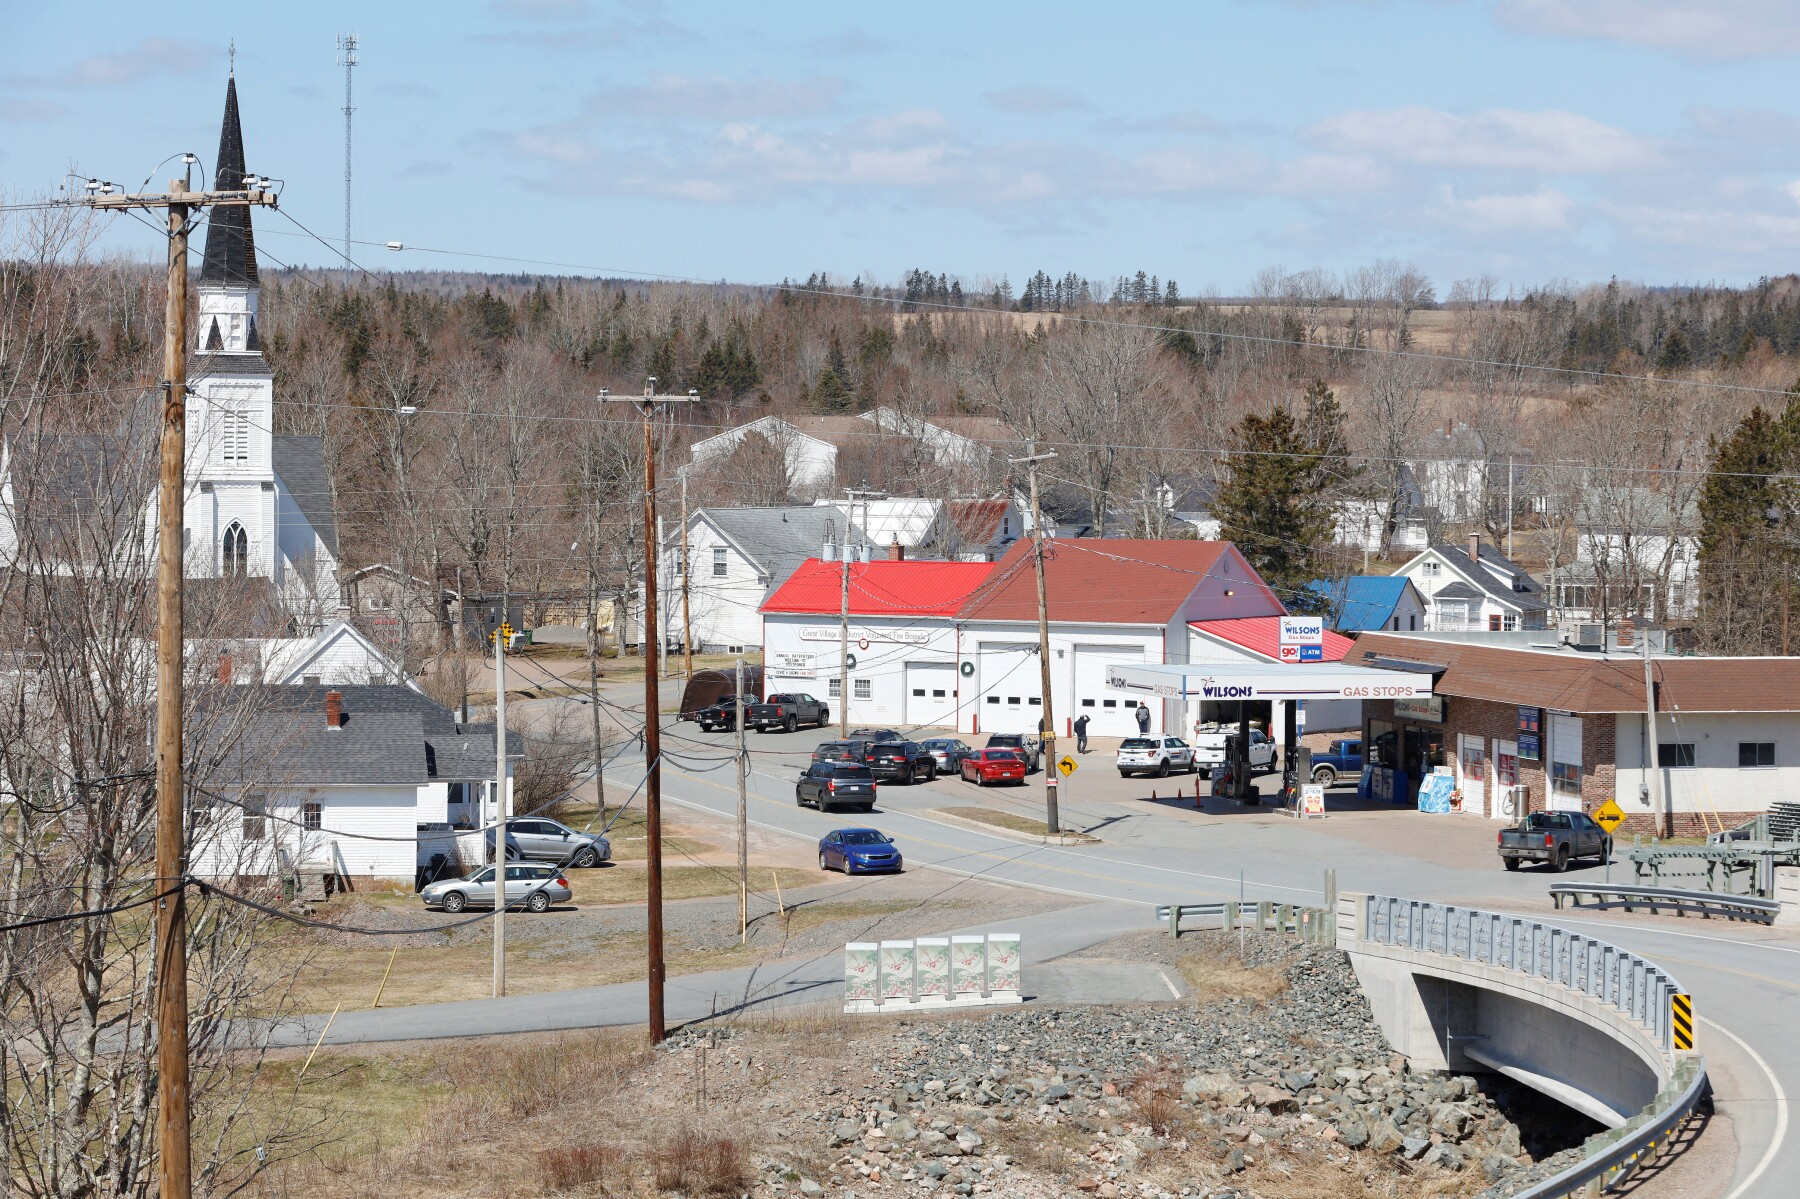 RCMP command post at Great Village Fire Department after finding Wortman in Nova Scotia